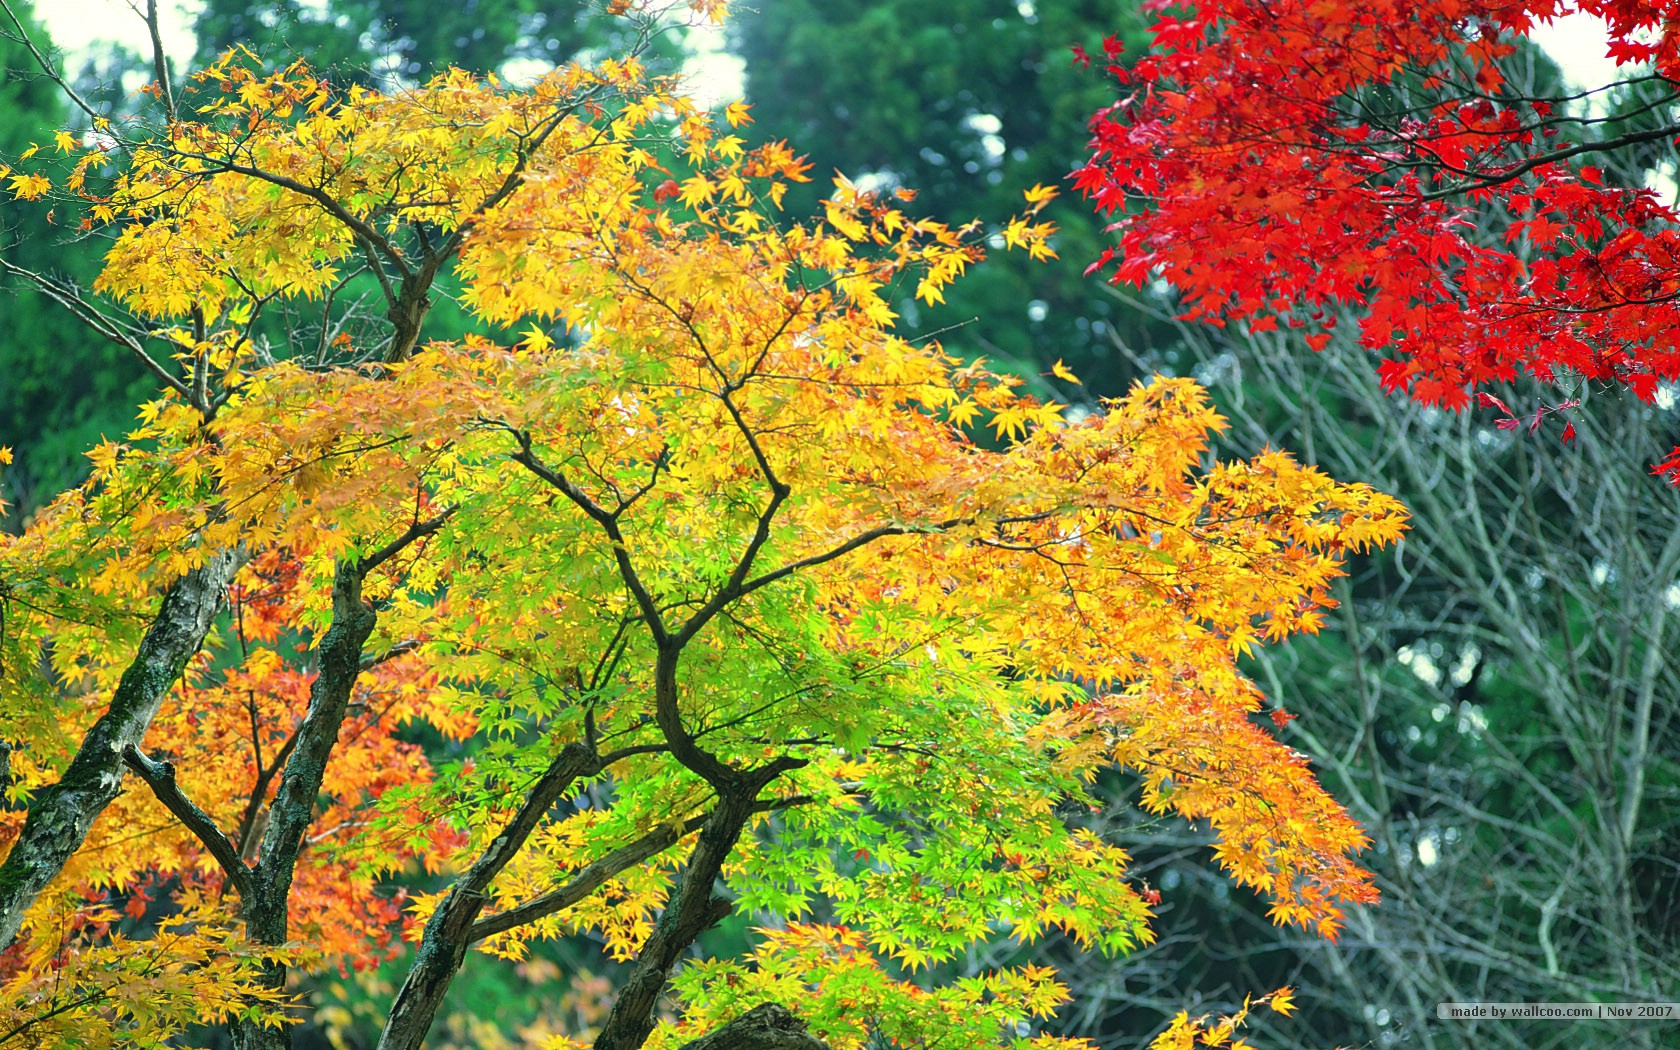 nature_autumn_red_leaves_24120_11.jpg